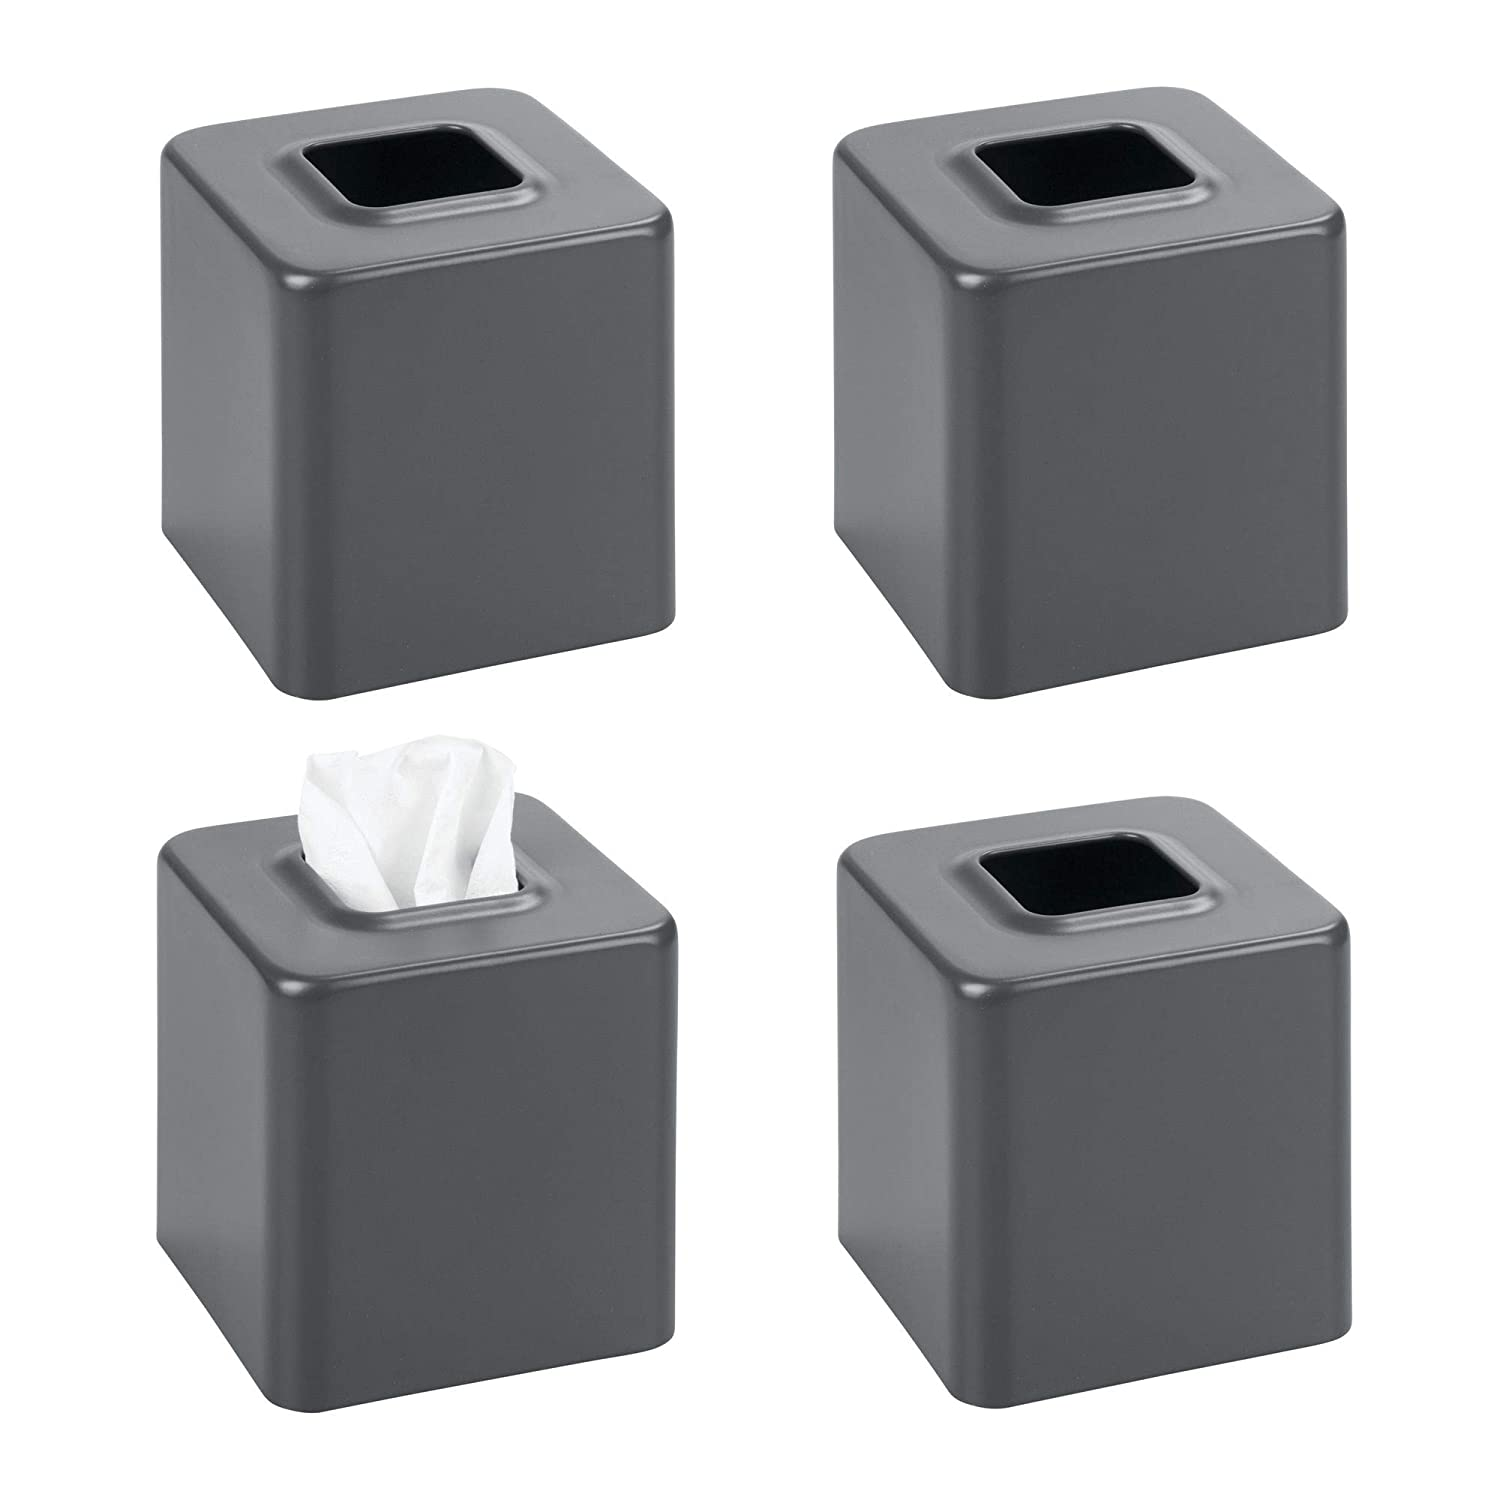 Desks and Tables mDesign Modern Square Metal Paper Facial Tissue Box Cover Holder for Bathroom Vanity Countertops Black MetroDecor 2758MDBA Bedroom Dressers Night Stands